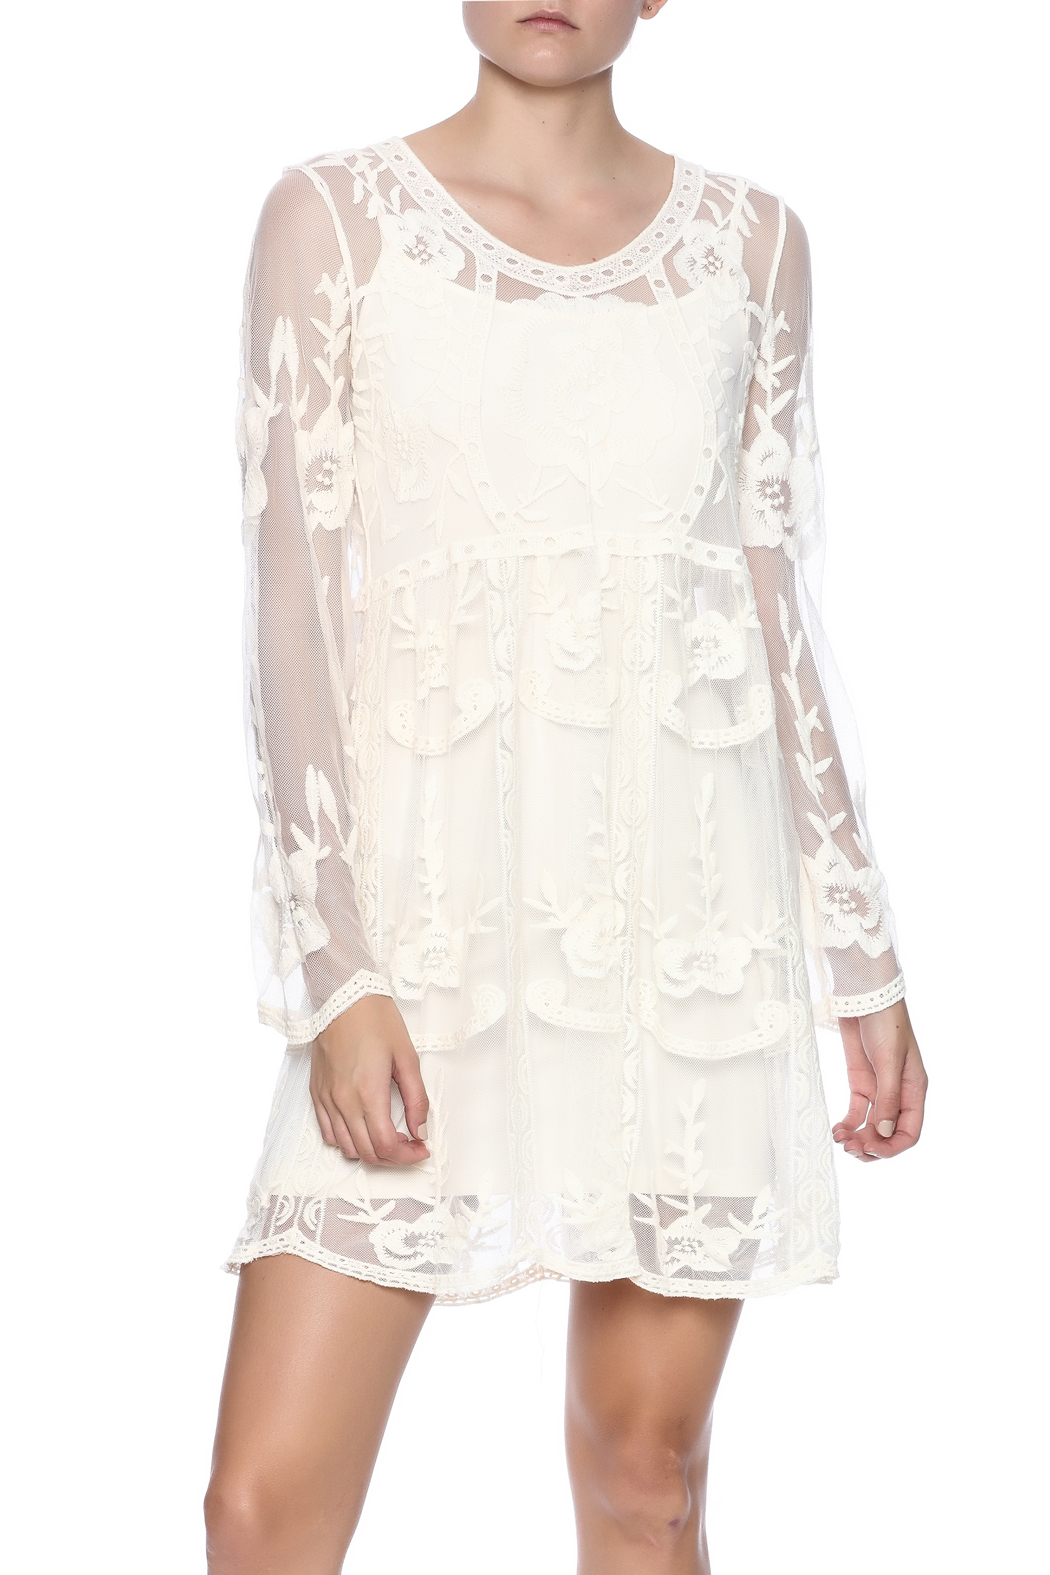 fashion on earth Crochet Lace Dress - Main Image